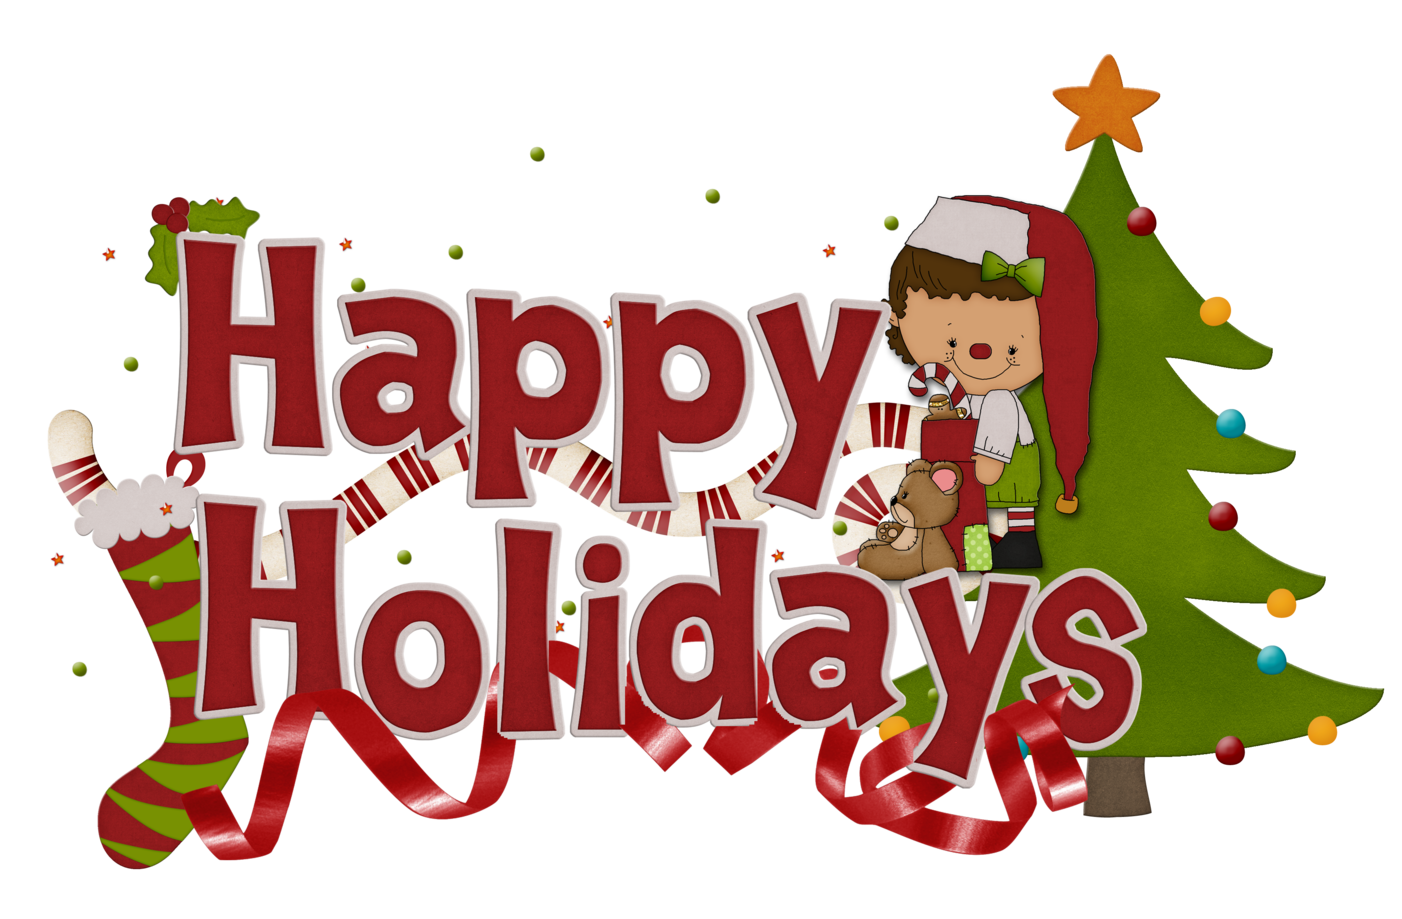 Happy Holidays Clip Art Free - Free Clip Art Holidays